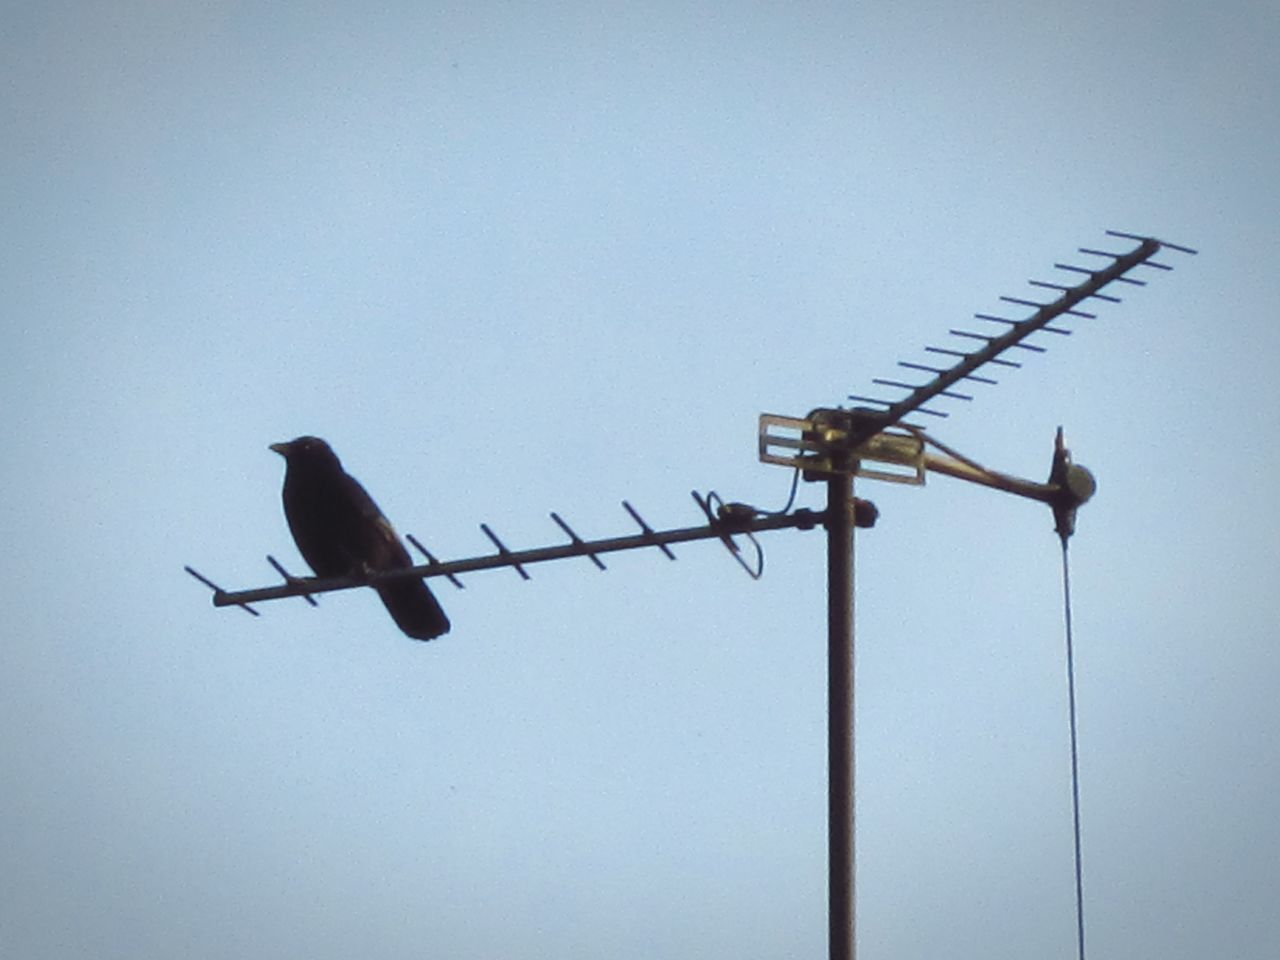 bird, animals in the wild, animal themes, low angle view, perching, clear sky, animal wildlife, copy space, one animal, wildlife, connection, no people, day, crow, outdoors, cable, raven - bird, nature, television aerial, technology, sky